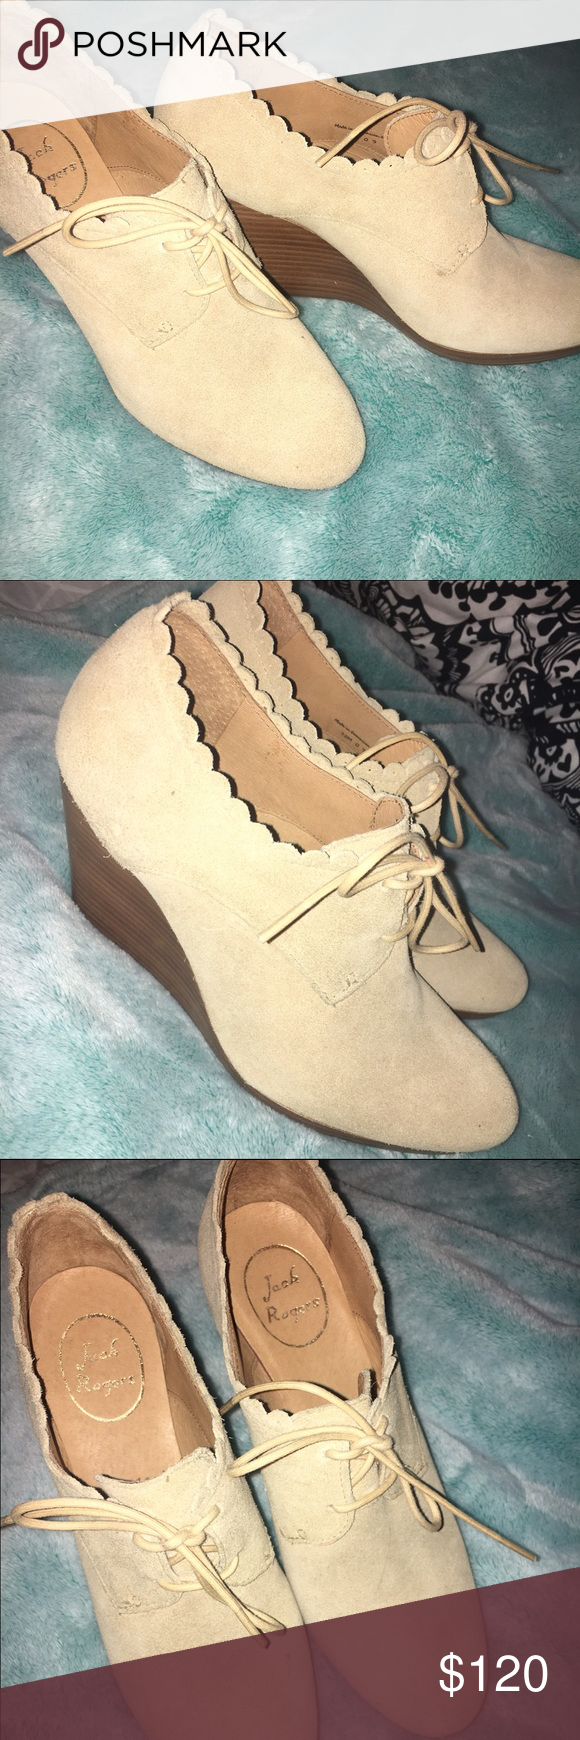 ac58e3b14ea Jack Rogers Olivia Wedge Bootie Suede Only worn 3x